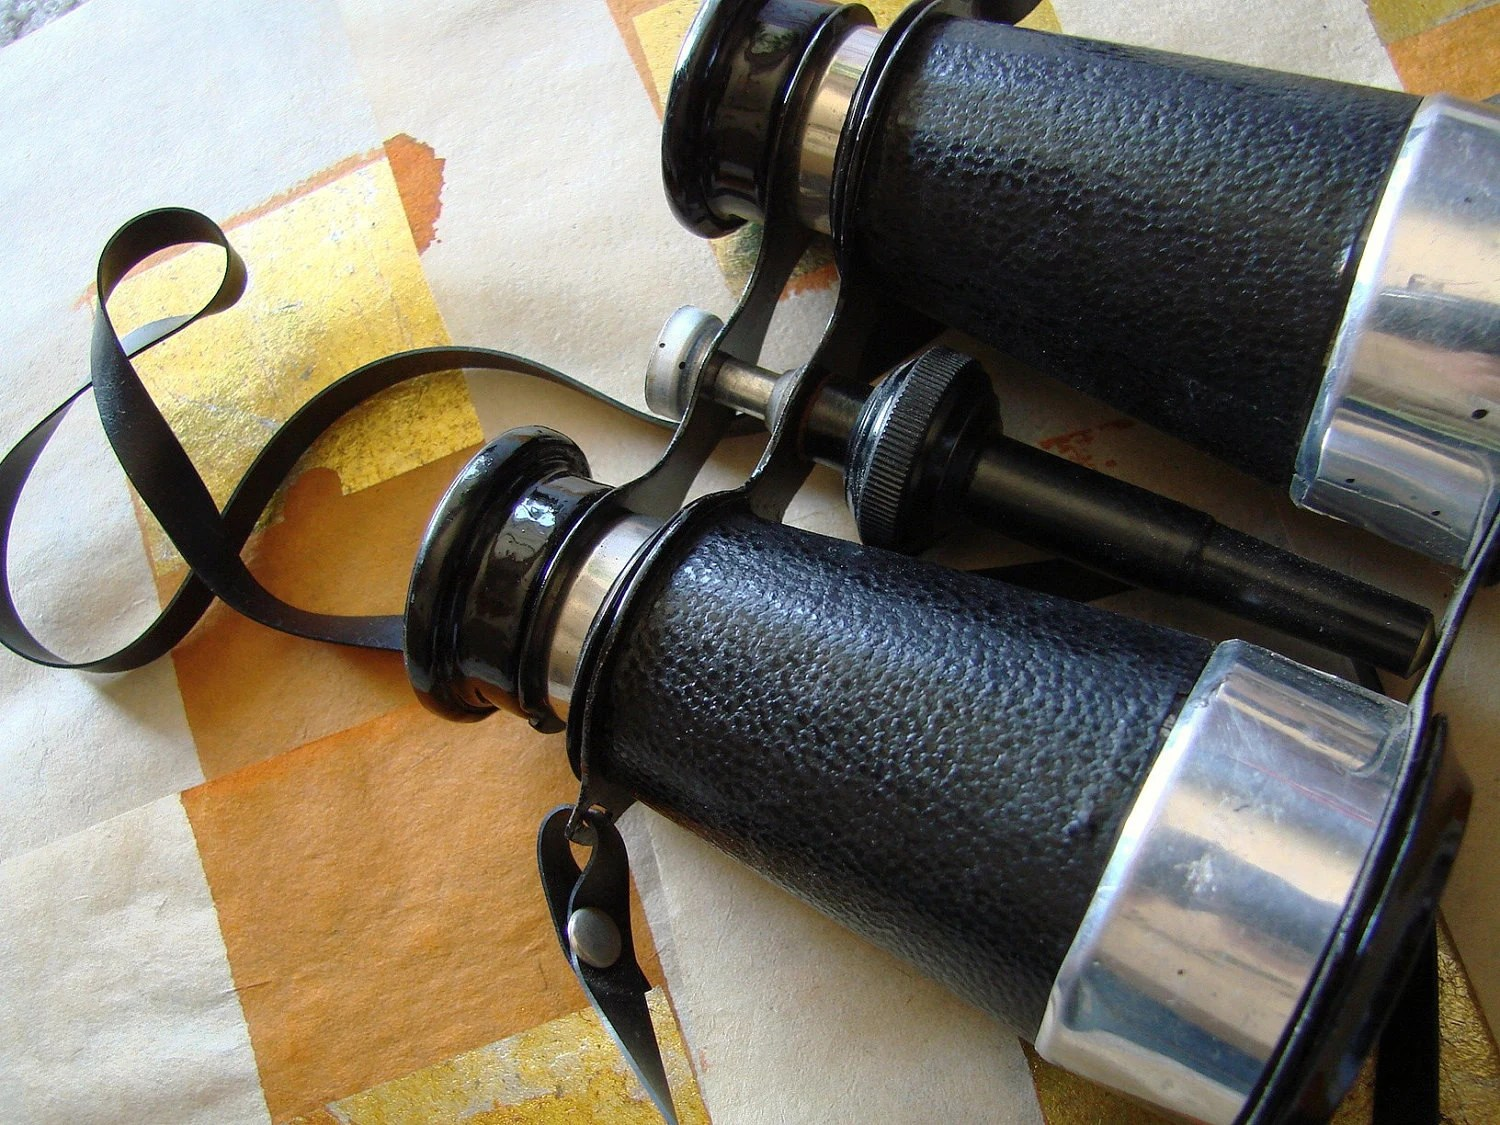 Vintage Antique Japan Binoculars and Compass 1950's Aluminum, Paper, and Vinyl